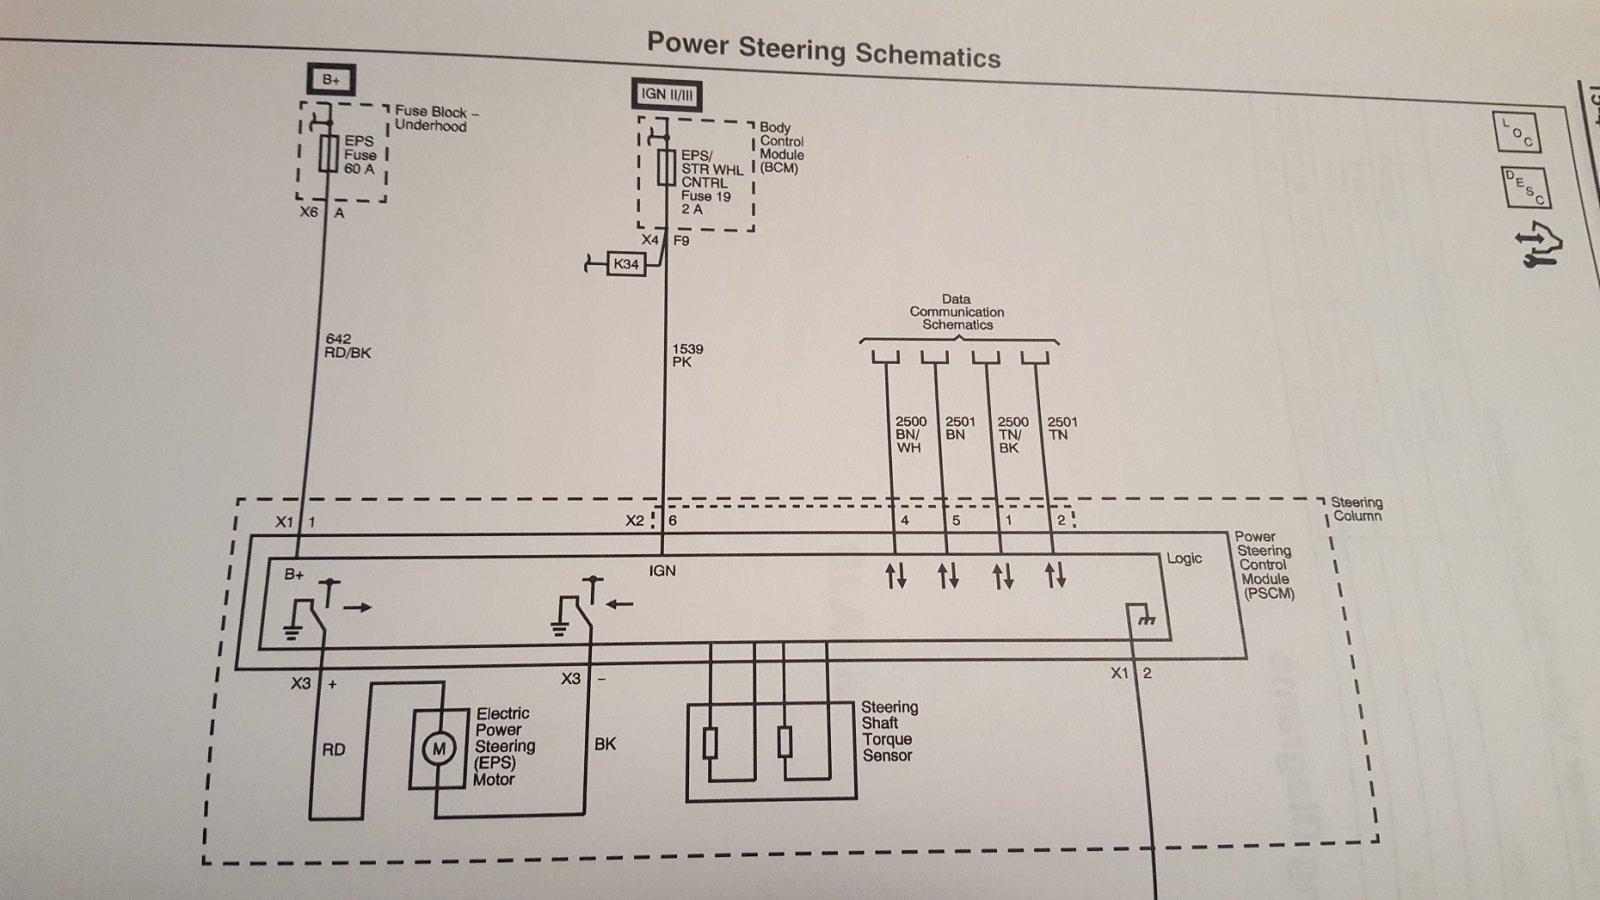 [SCHEMATICS_4LK]  EPS WIRING DIAGRAM | DF Kit Car Forum | Bk Wiring Diagram |  | DF Kit Car